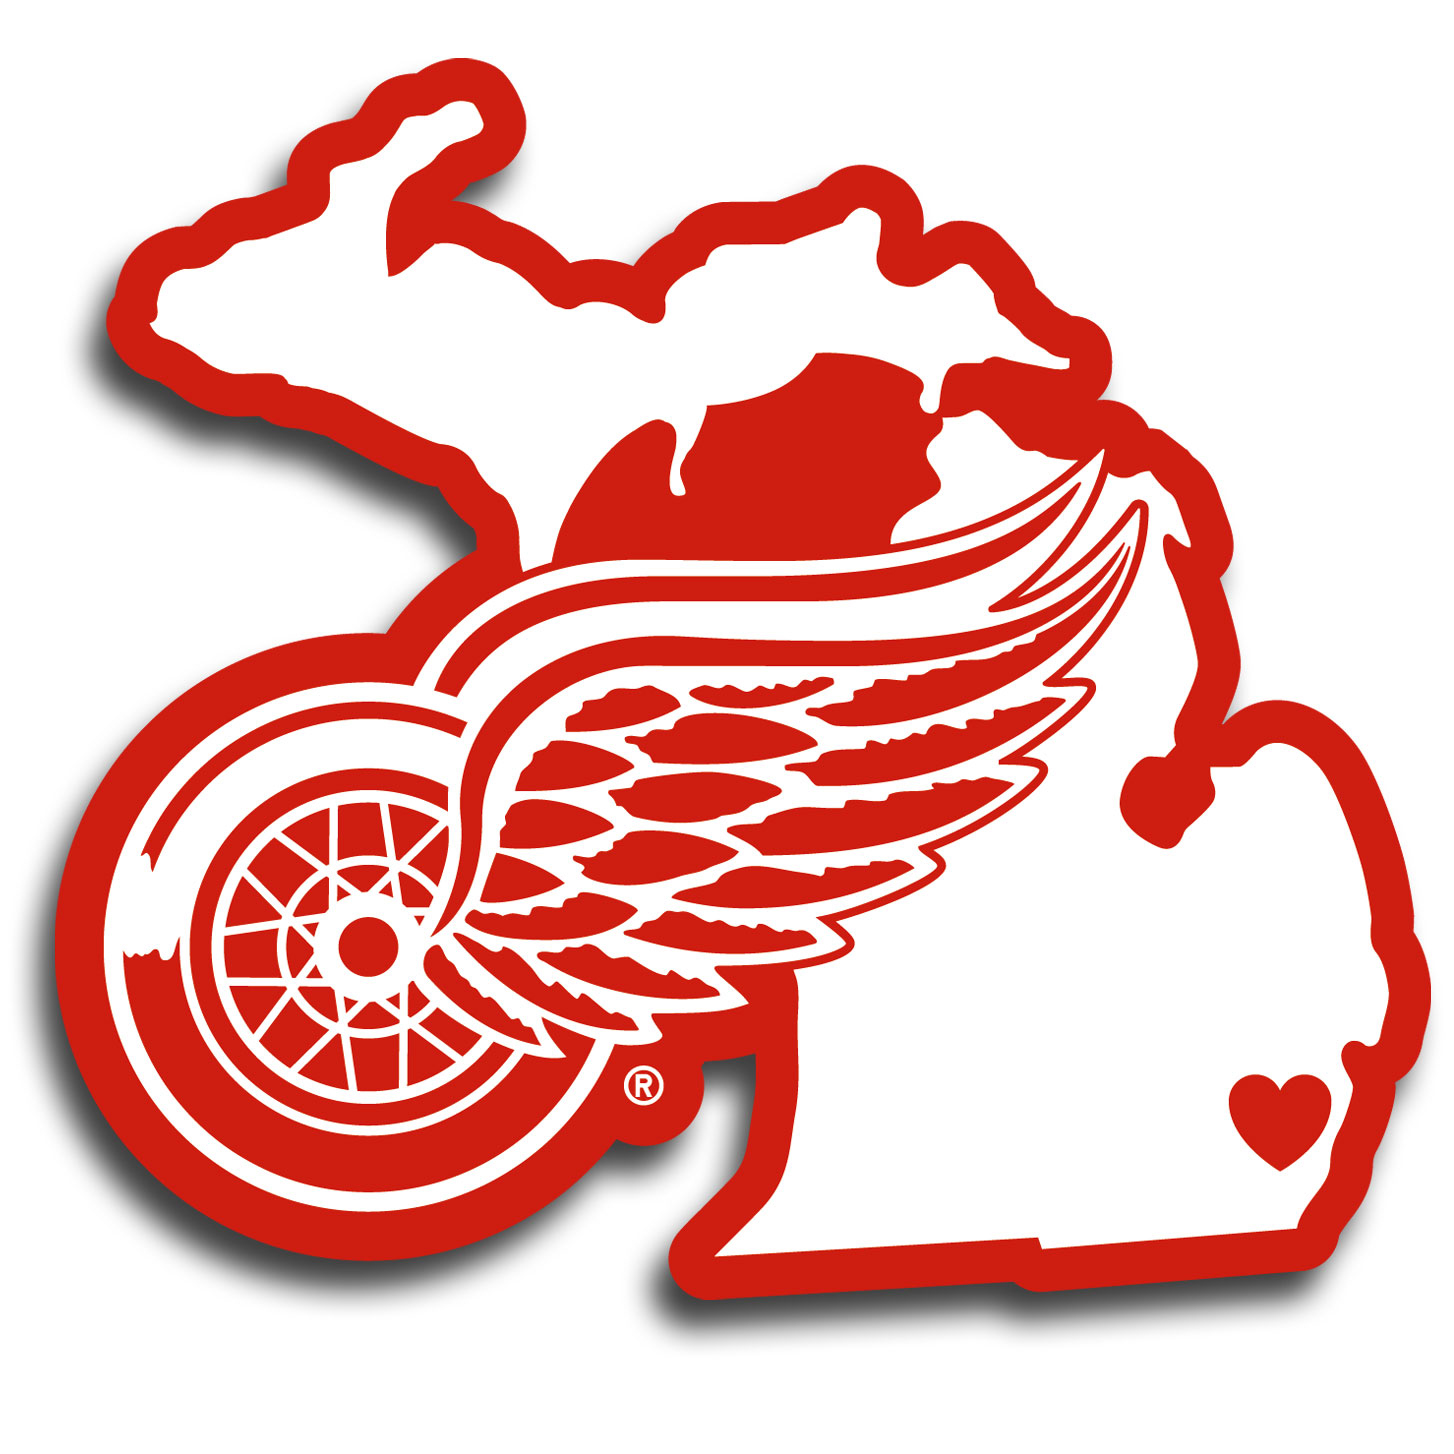 Detroit Red Wings® Home State Decal - It's a home state decal with a sporty twist! This Detroit Red Wings® decal feature the team logo over a silhouette of the state in team colors and a heart marking the home of the team. The decal is approximately 5 inches on repositionable vinyl.